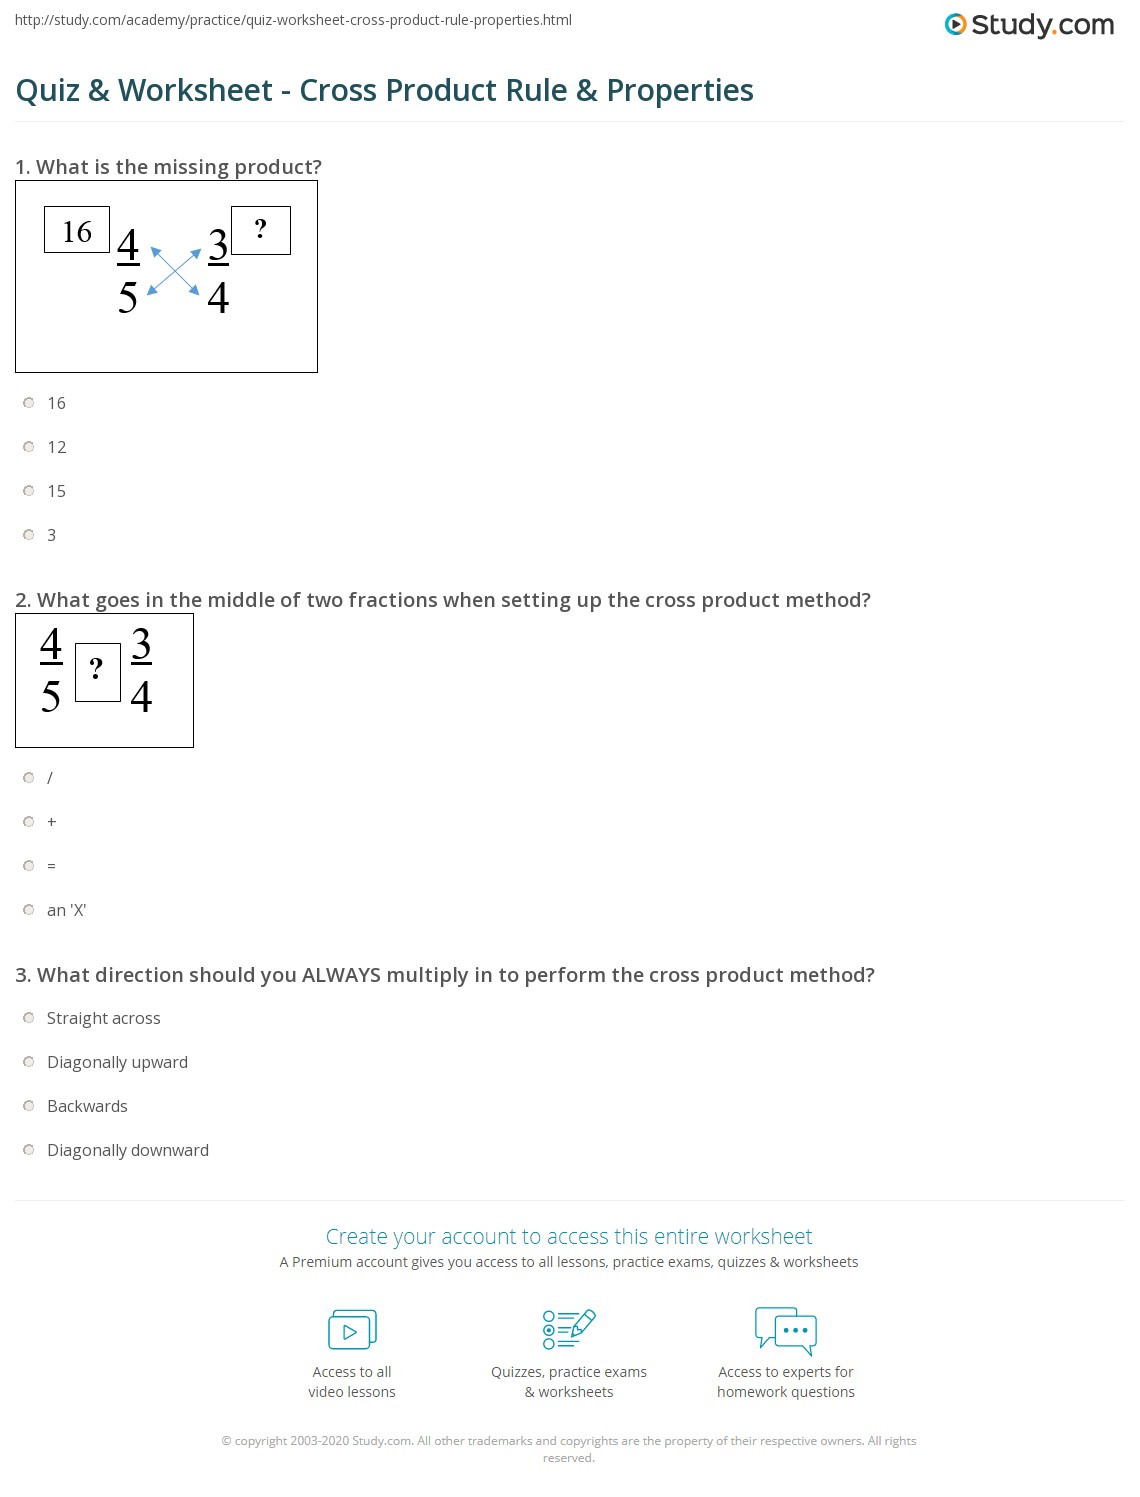 Properties Of Real Numbers Worksheet Quiz & Worksheet Cross Product Rule & Properties